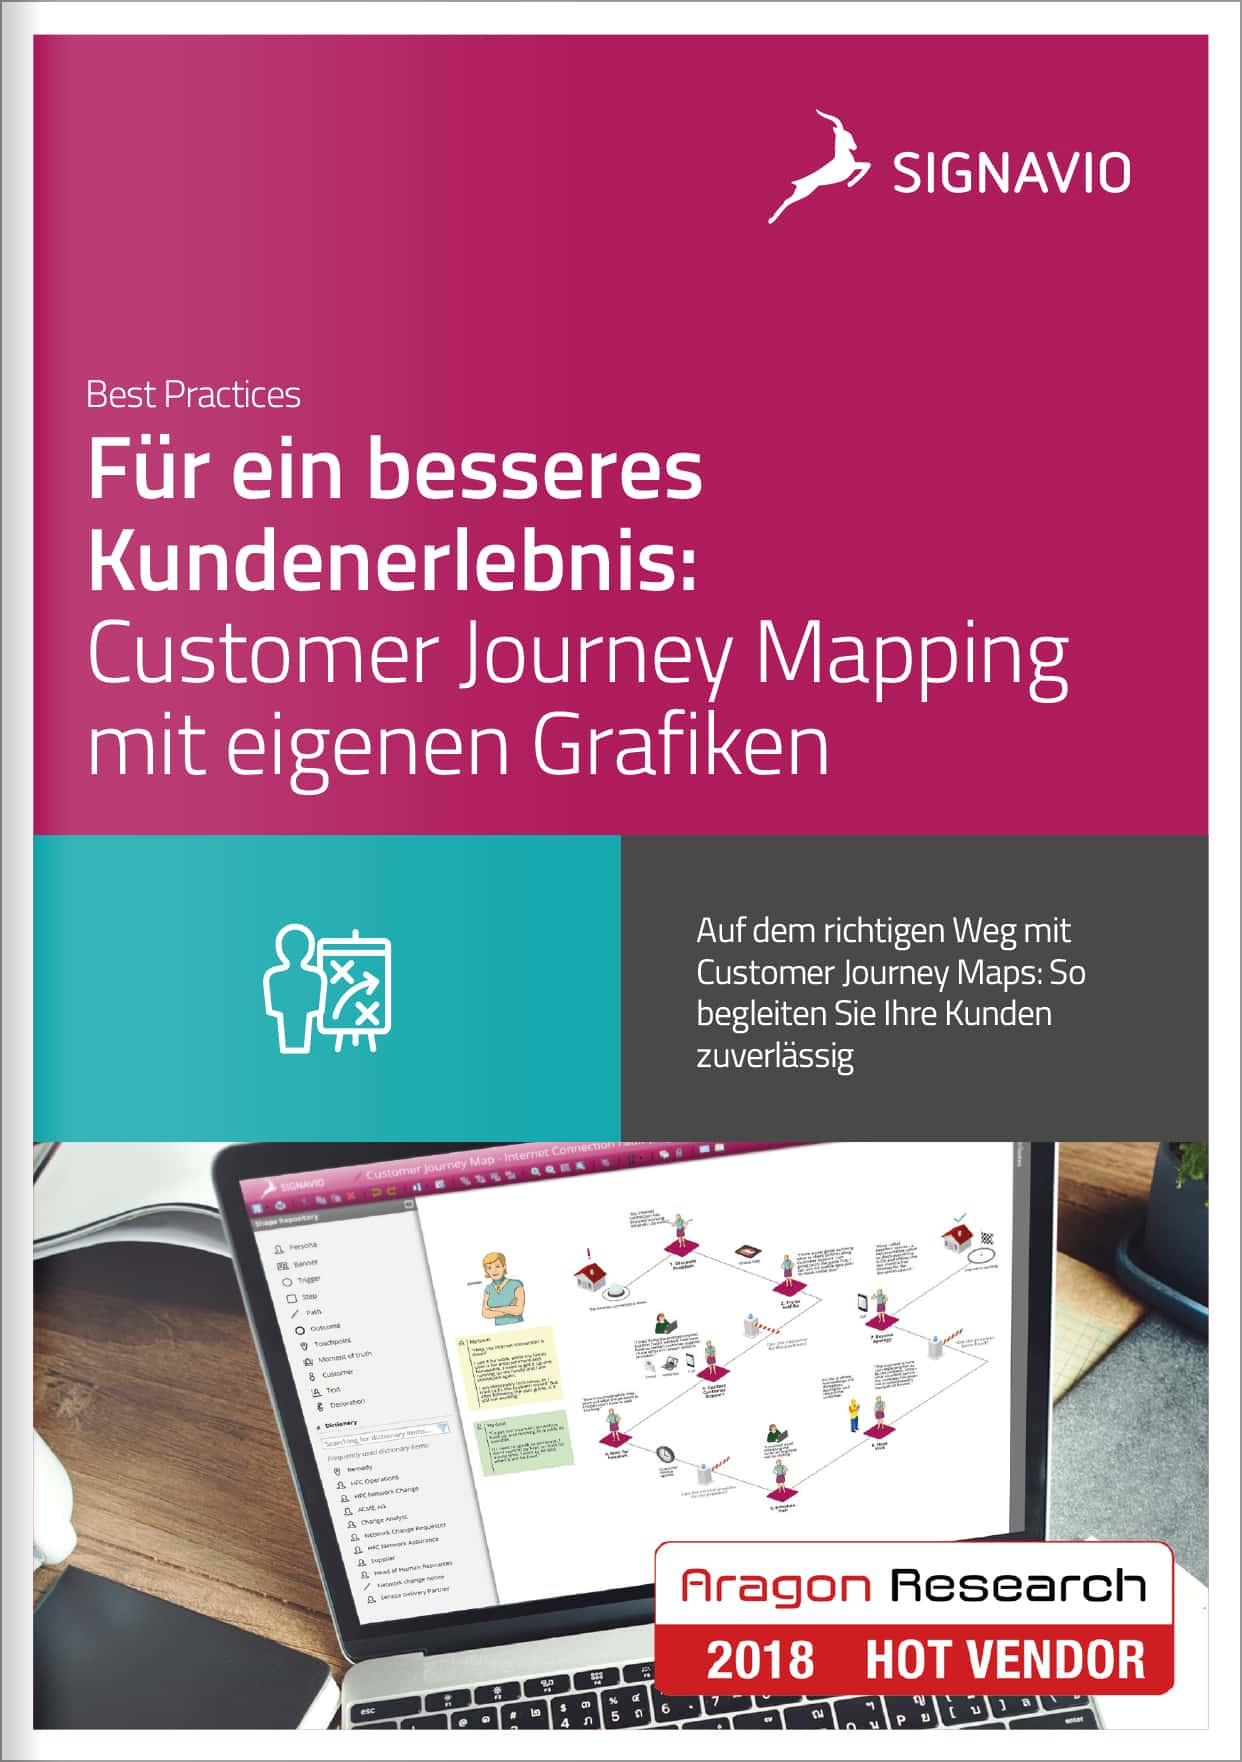 Best Practices: Customer Journey Mapping